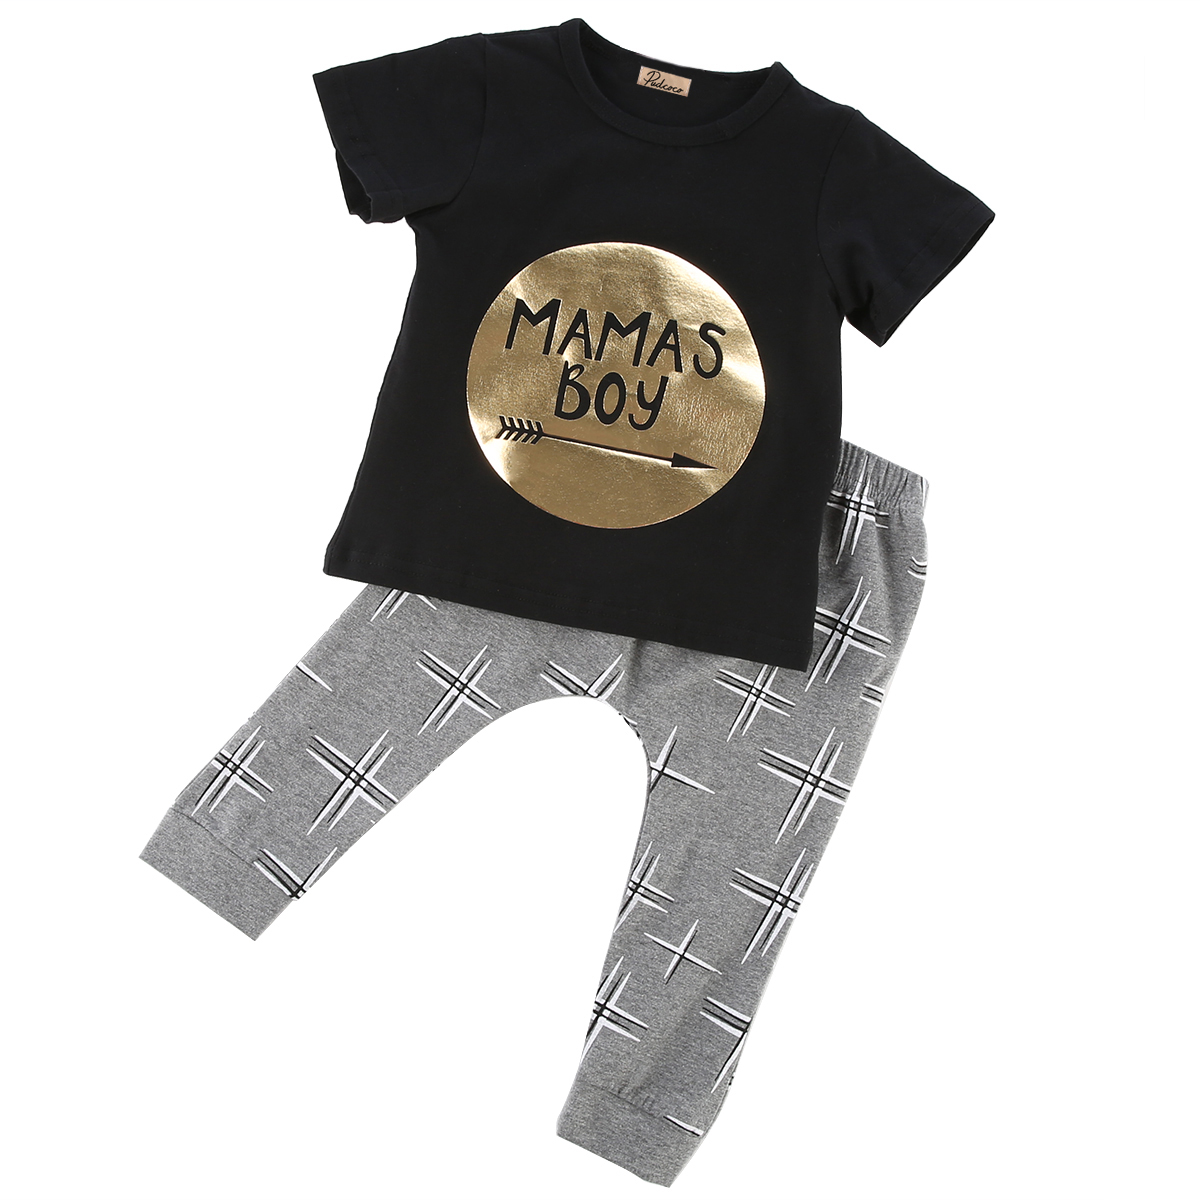 2Pcs  Mamas Boys Printed Jumpsuit Outfit Sets  Newborn Toddler Baby boys girls Infant Clothes Golden Letter 0-24M fashion 2pcs set newborn baby girls jumpsuit toddler girls flower pattern outfit clothes romper bodysuit pants